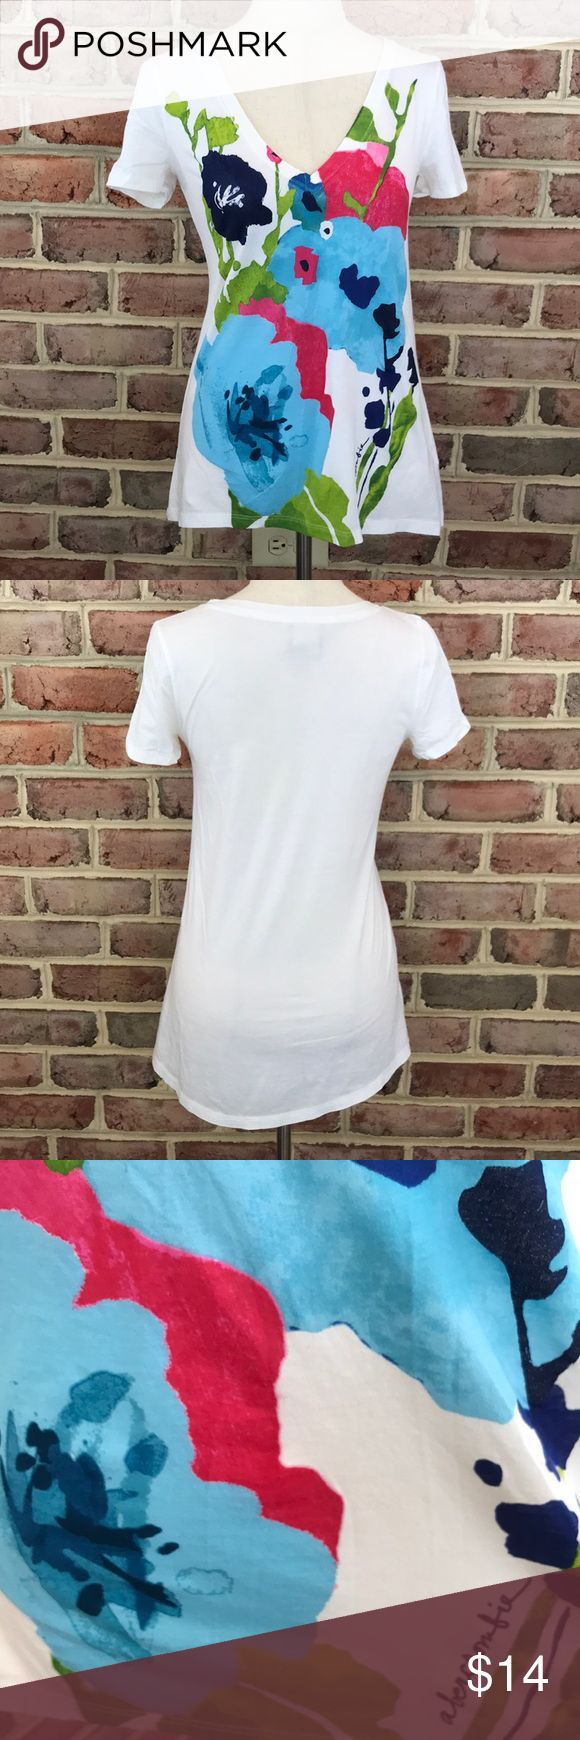 Abercrombie White Floral V-Neck T-Shirt Abercrombie White Floral V-Neck T-Shirt  Size XL, Short-Sleeve   100% Cotton,  exclusive of decoration   Excellent Used Condition   Smoke free home abercrombie kids Shirts & Tops Tees - Short Sleeve